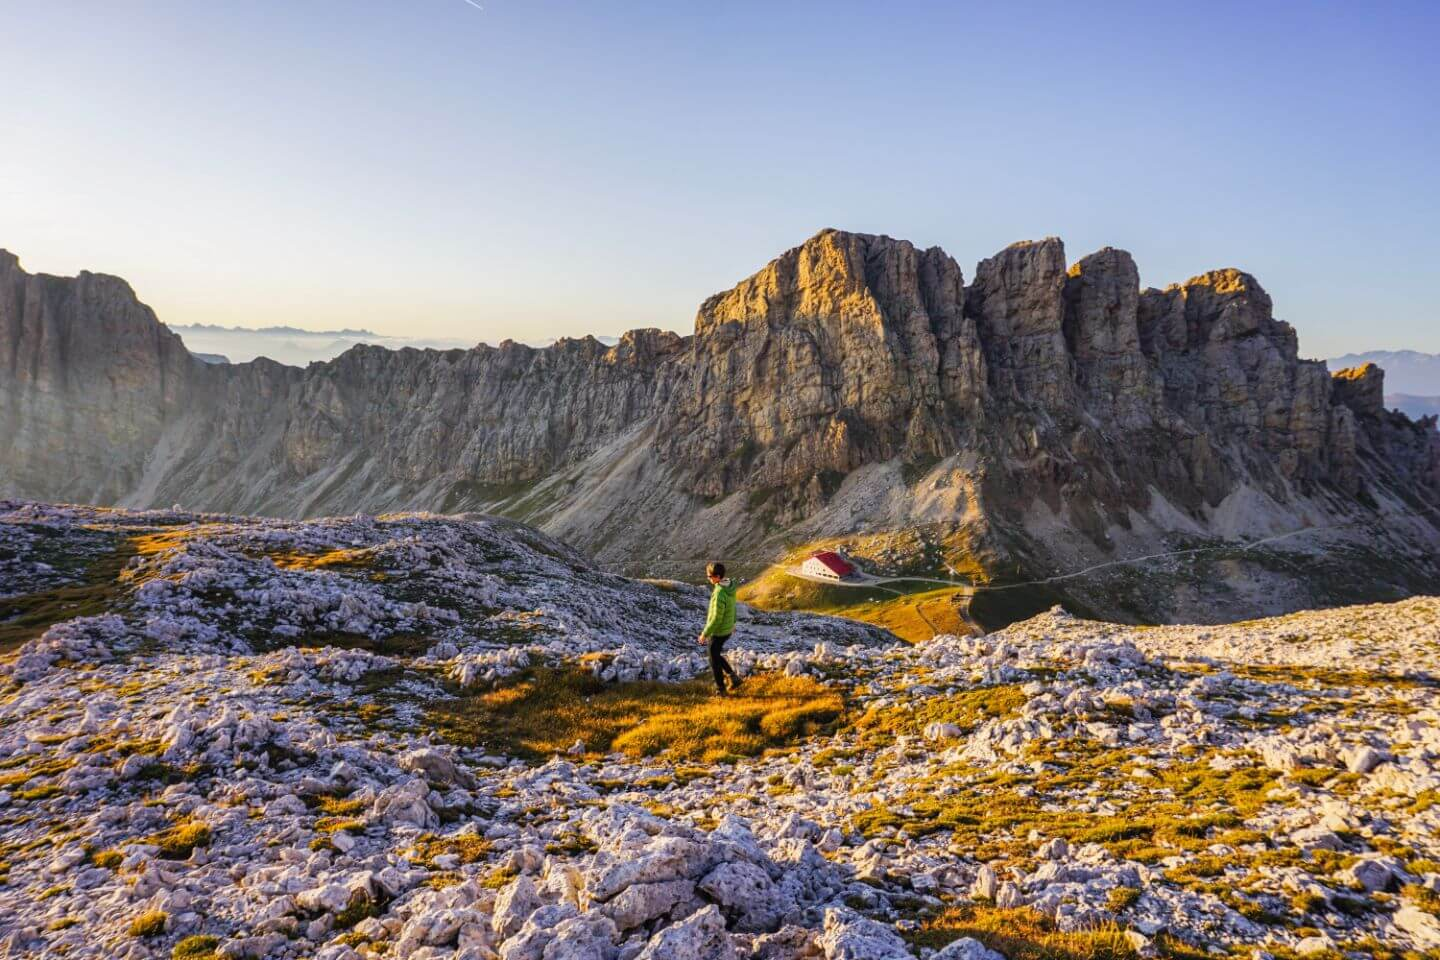 Dolomites Travel Guide and Travel Tips